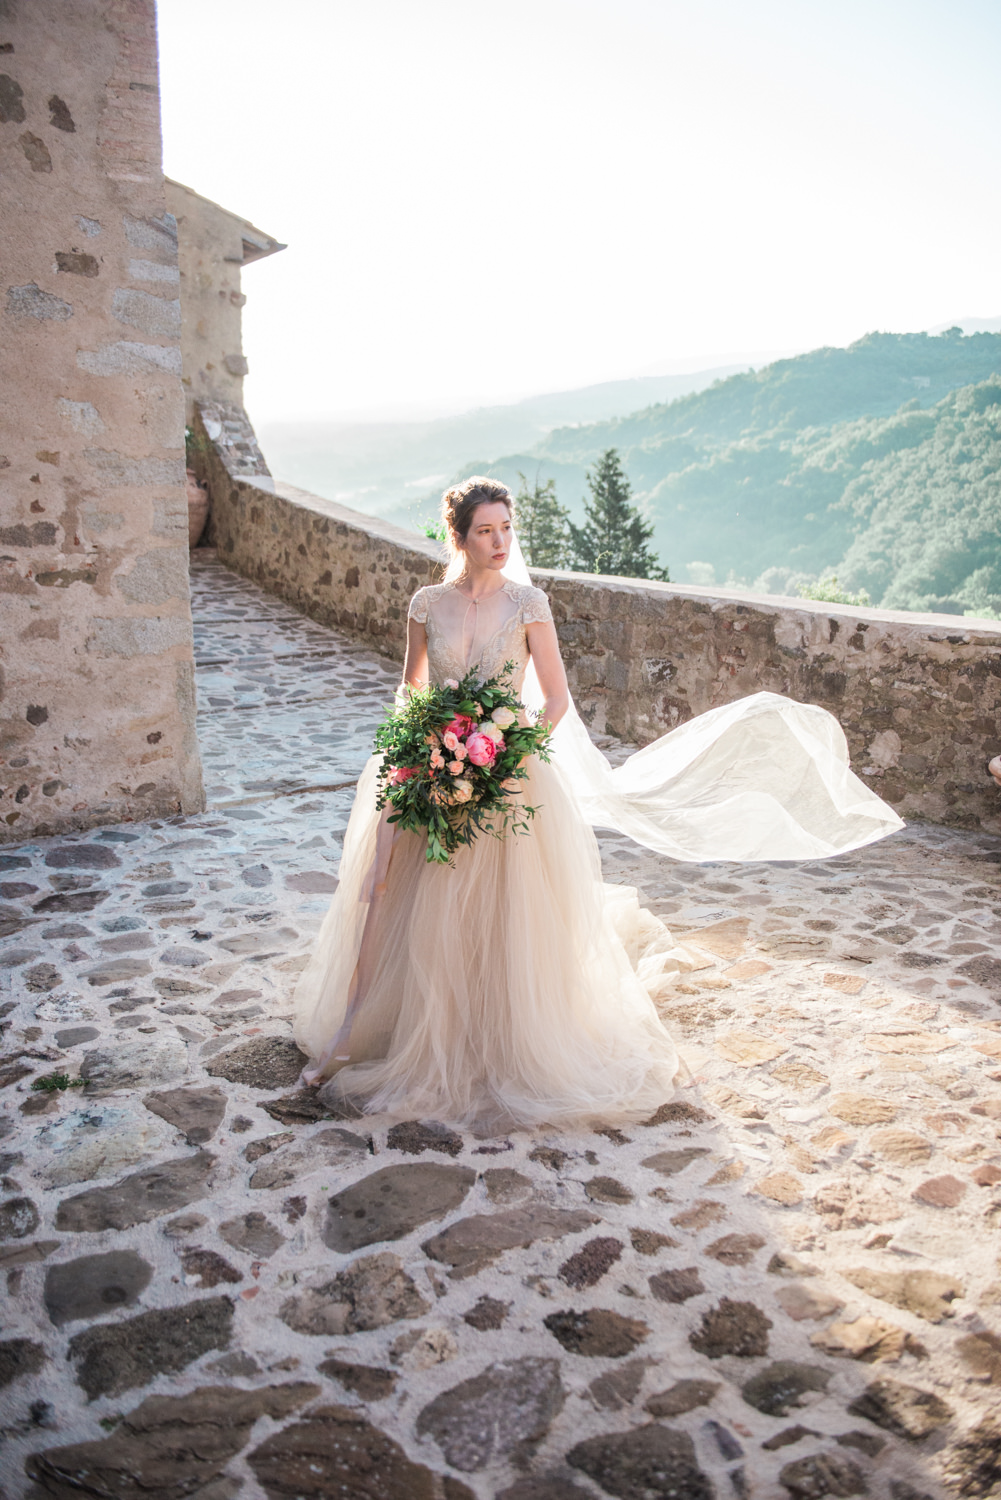 A wedding photographer photographs a wedding in the Tuscan hills of Italy